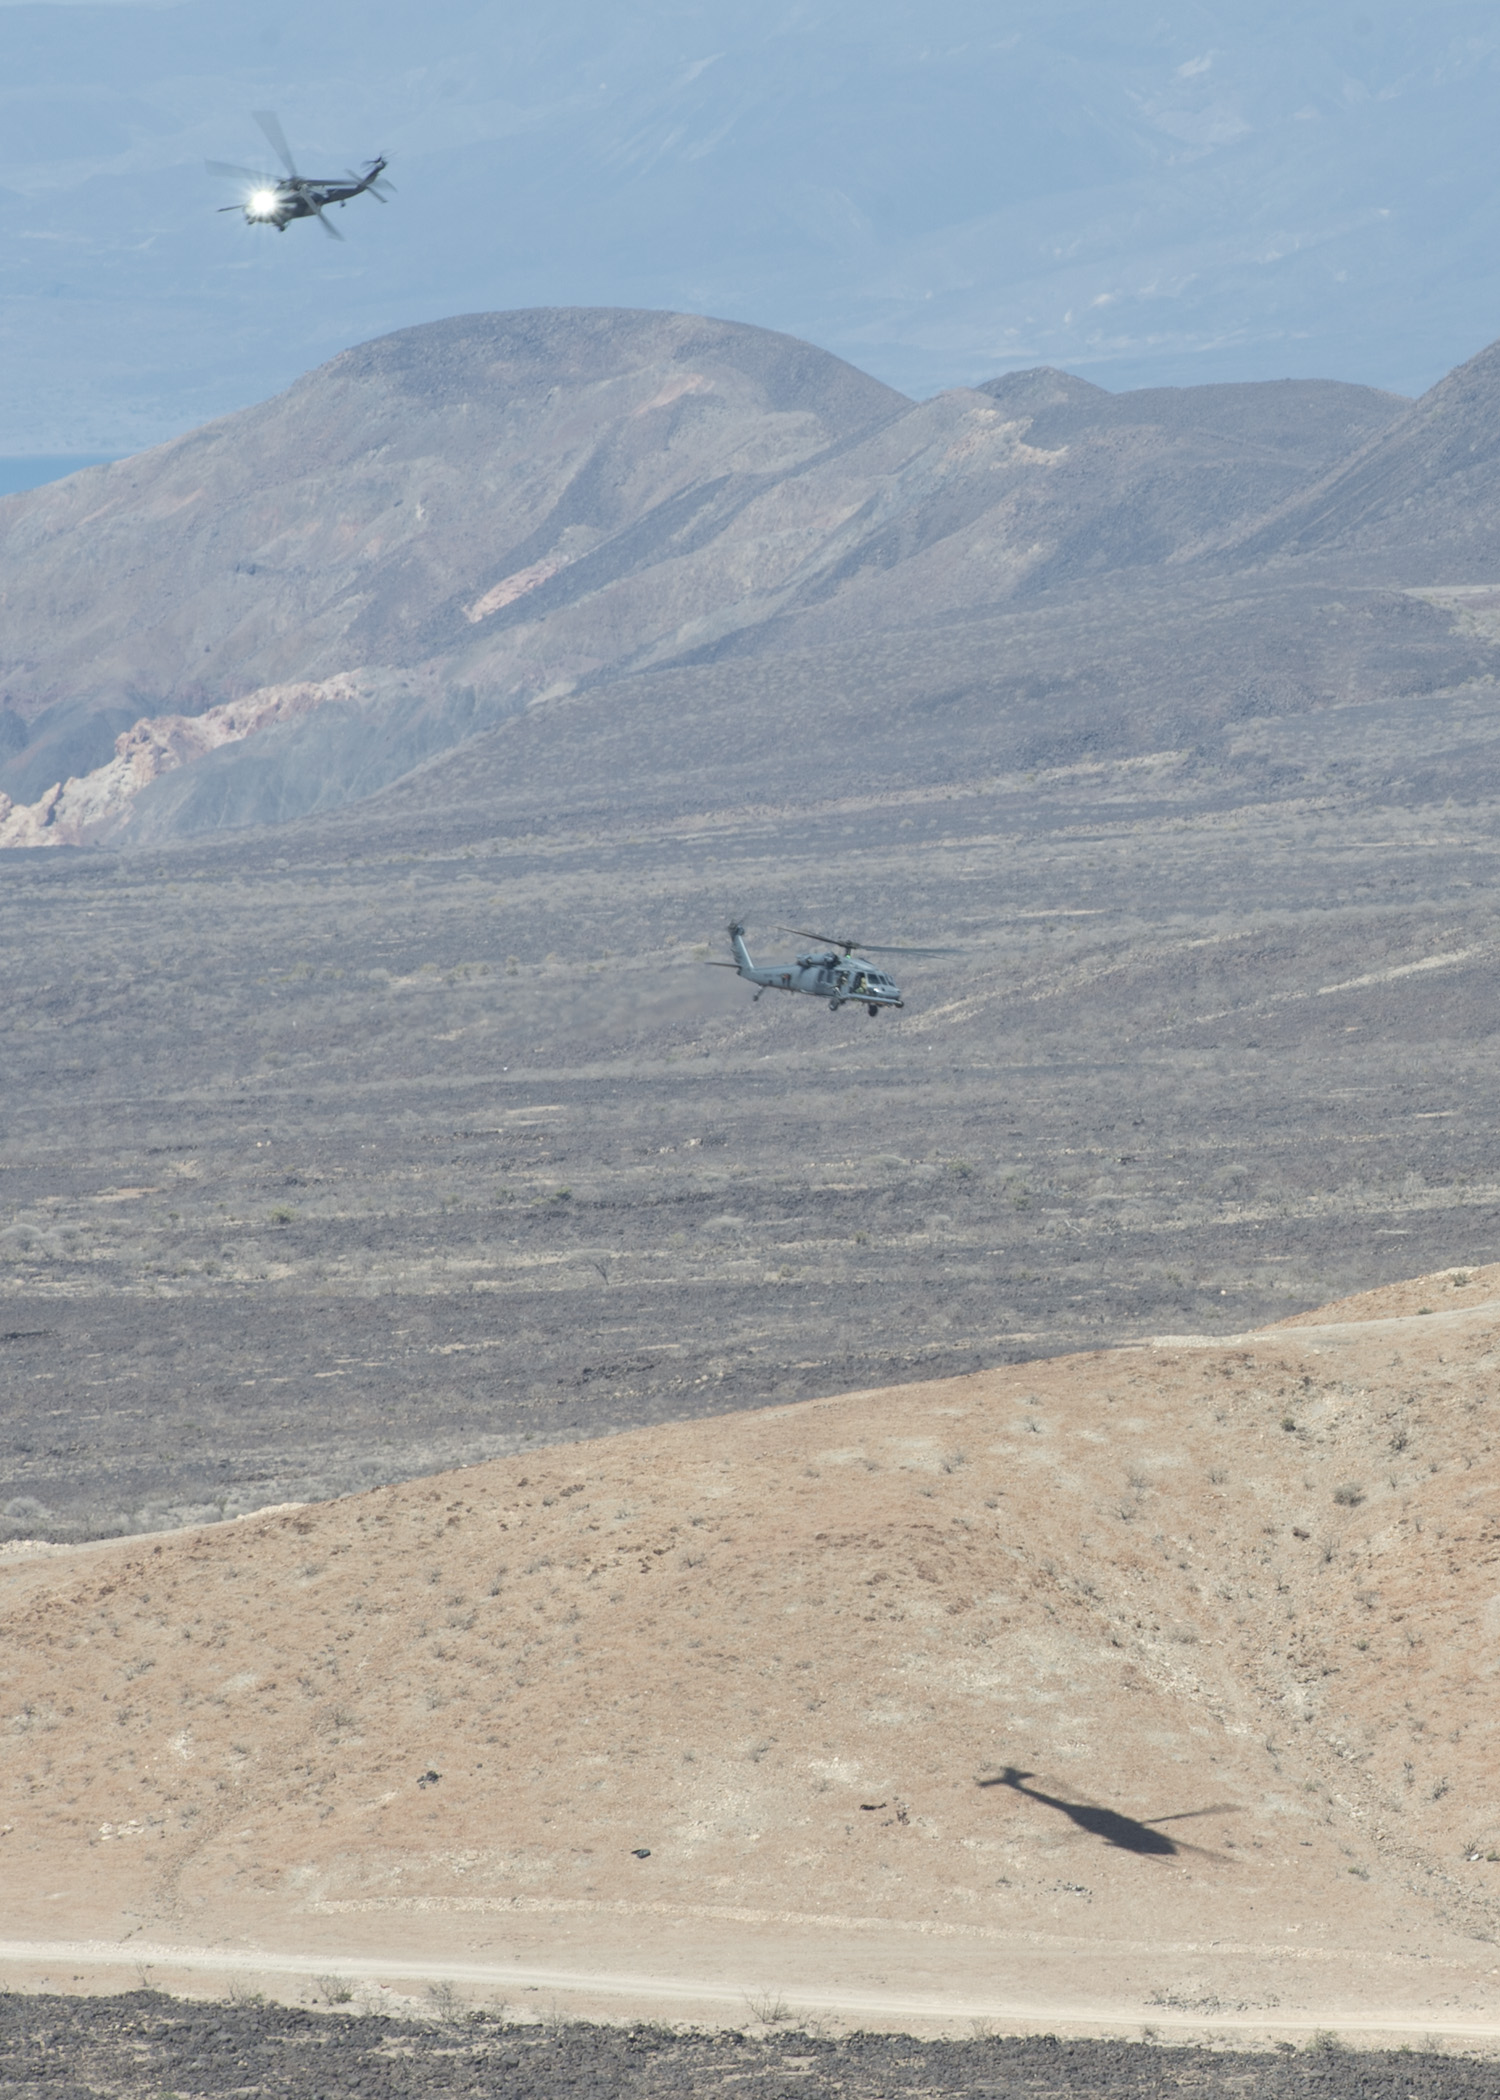 Two U.S. Air Force HH-60 Pave Hawks from the 303rd Expeditionary Rescue Squadron, line their sites on a target called in by U.S. and French joint terminal attack controllers during a bilateral close air support training exercise in Arta, Djibouti, Feb. 4, 2015. The event was part of a scheduled bilateral CAS exercise between a contingent of 24th Marine Expeditionary Unit Marines and French soldiers and sailors. (U.S. Air Force photo by Staff Sgt. Kevin Iinuma)